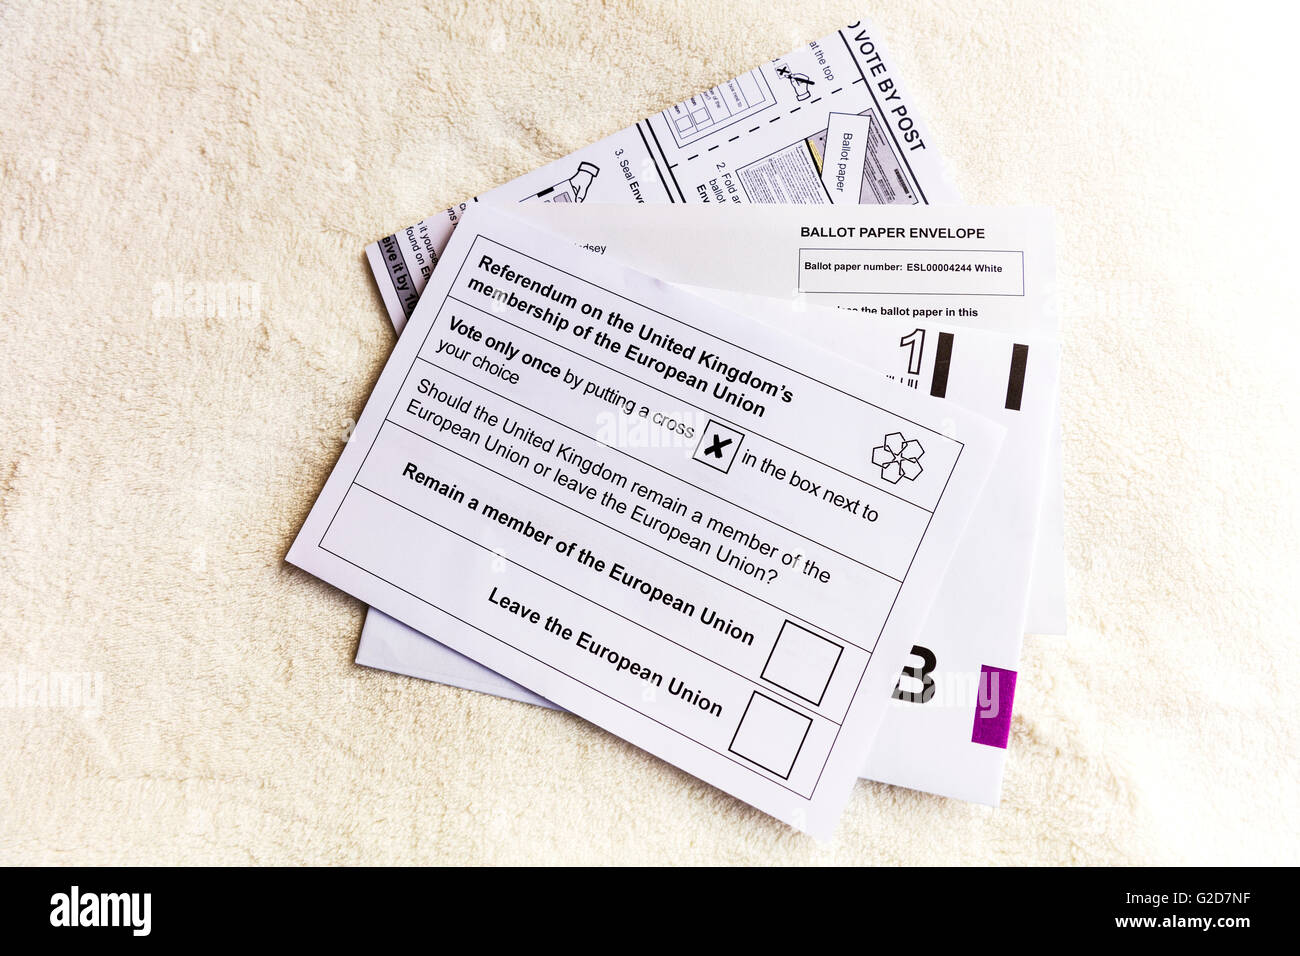 UK postal ballot papers arrive to households in England 28/05/2016 to vote on the referendum on the United Kingdom's - Stock Image